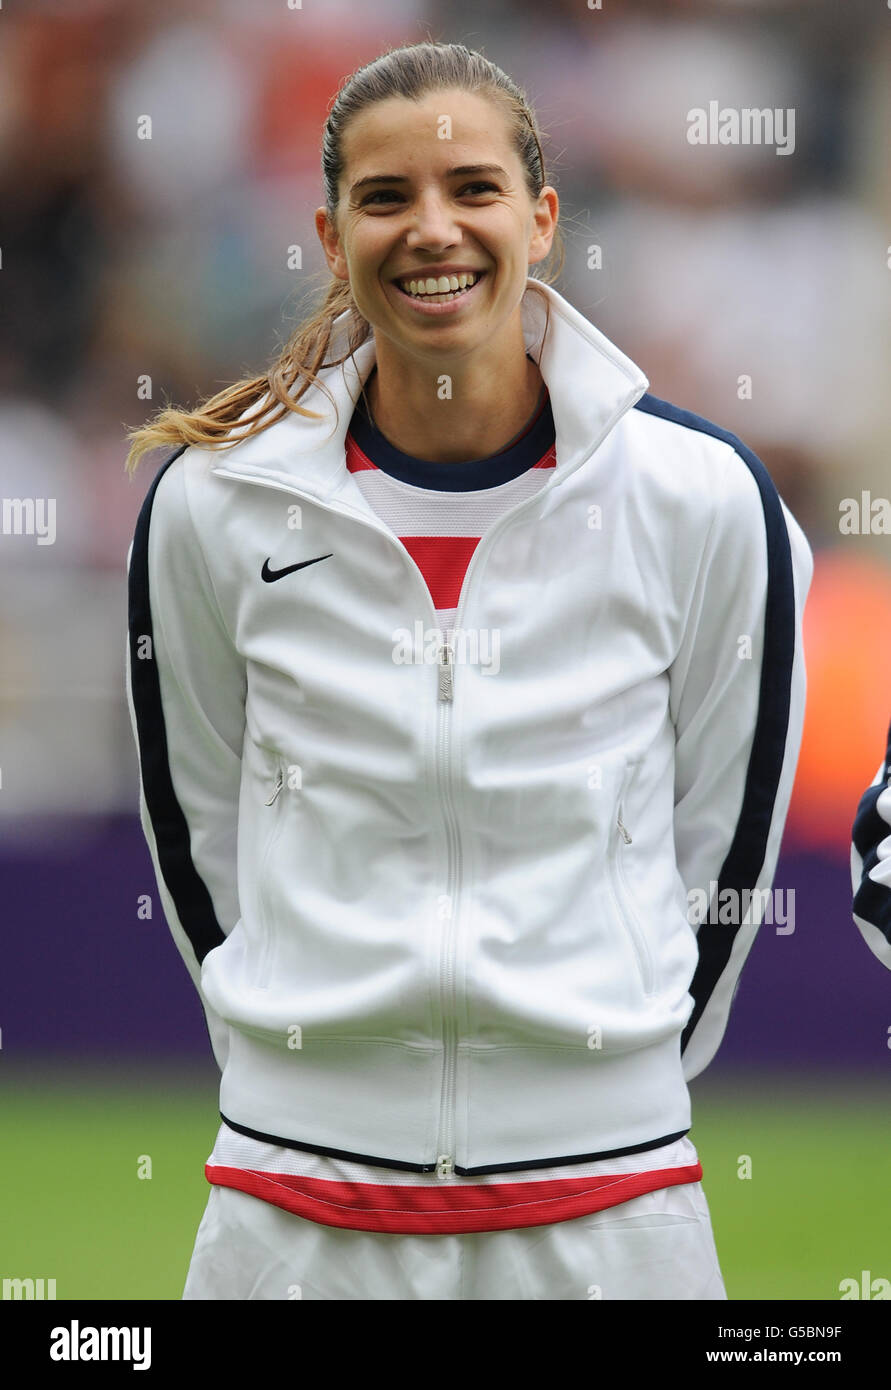 London Olympic Games - Day 7 - Stock Image